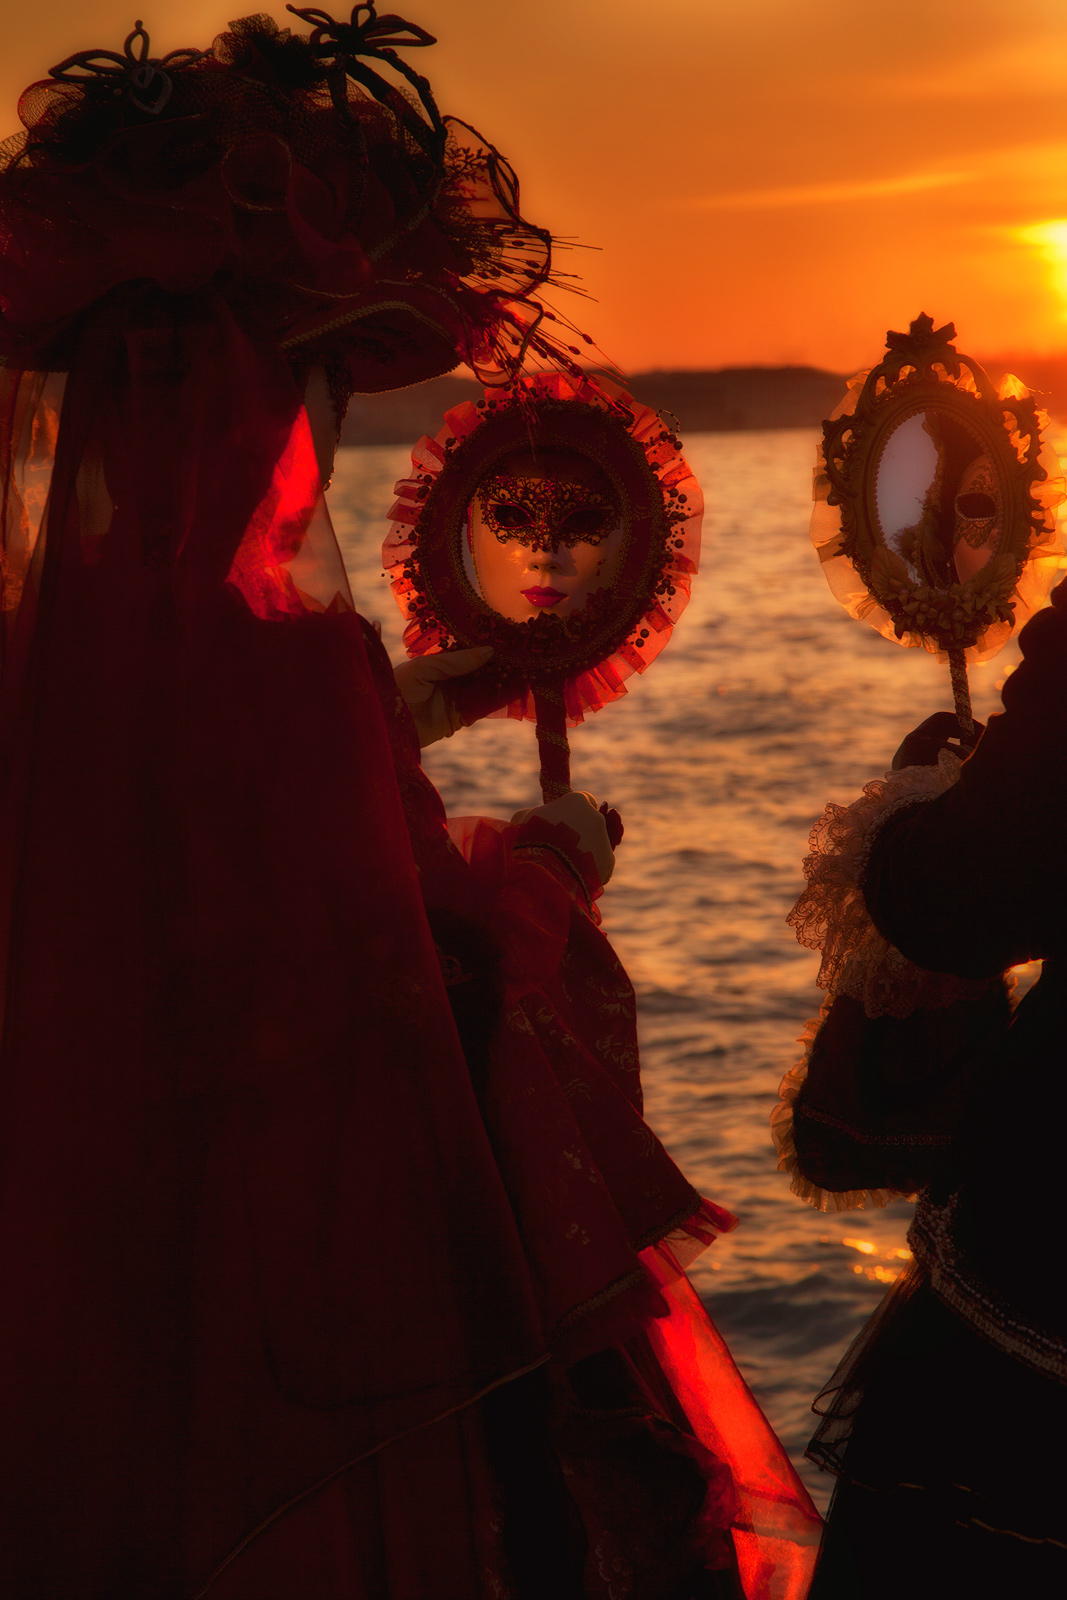 carnival, celebration, colorful, costume, europe, italy, mask, mirror, party, san gorgio, sunset, venice, vertical, photo